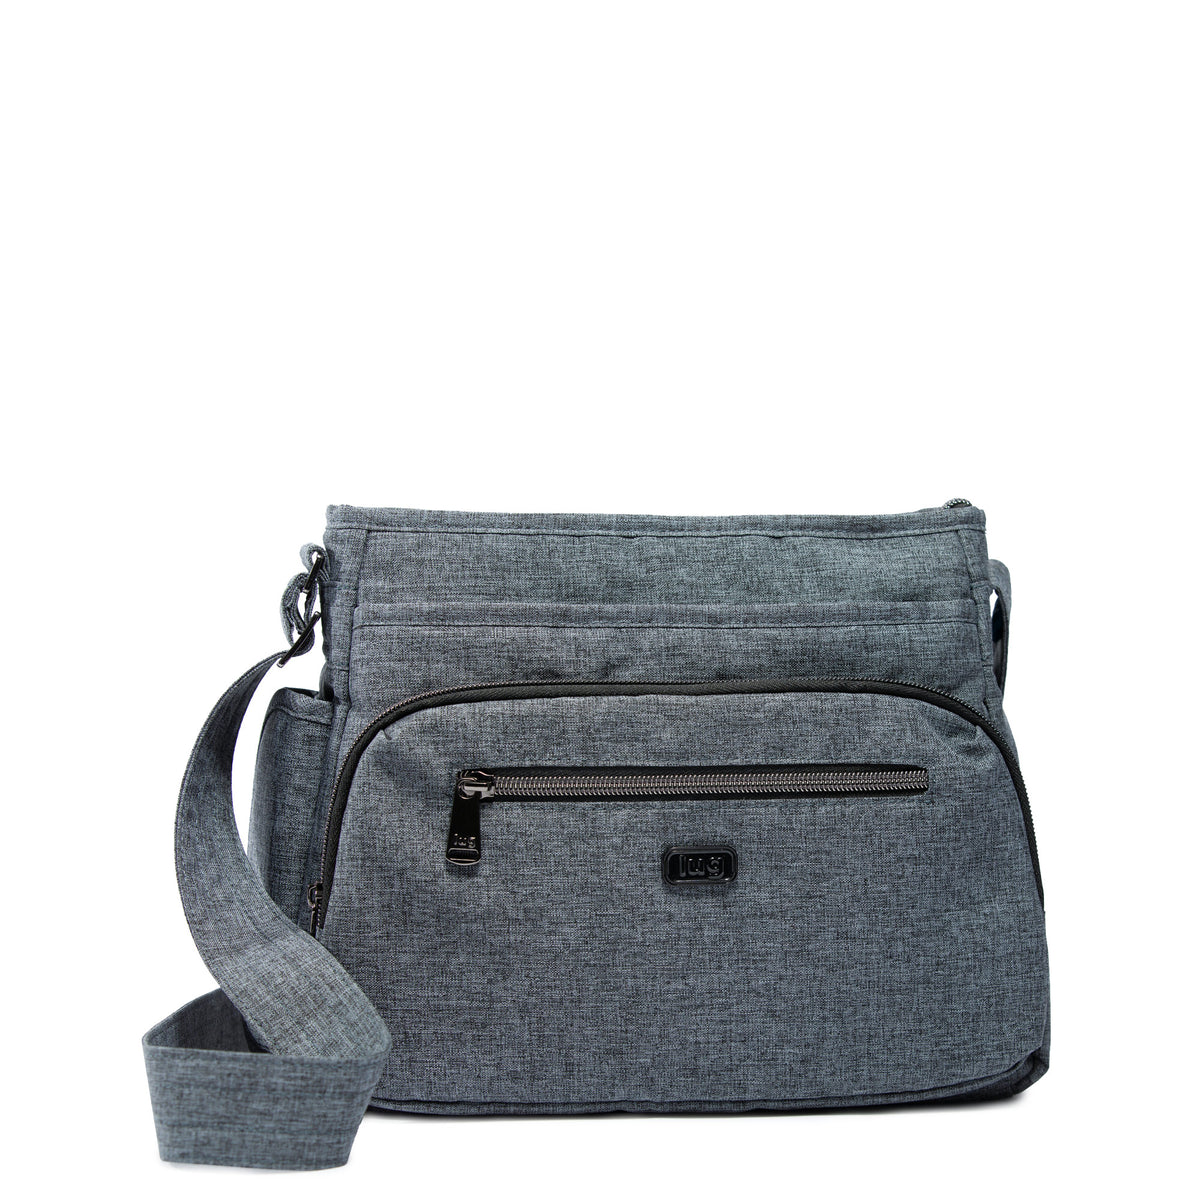 Shimmy 2 Crossbody Bag